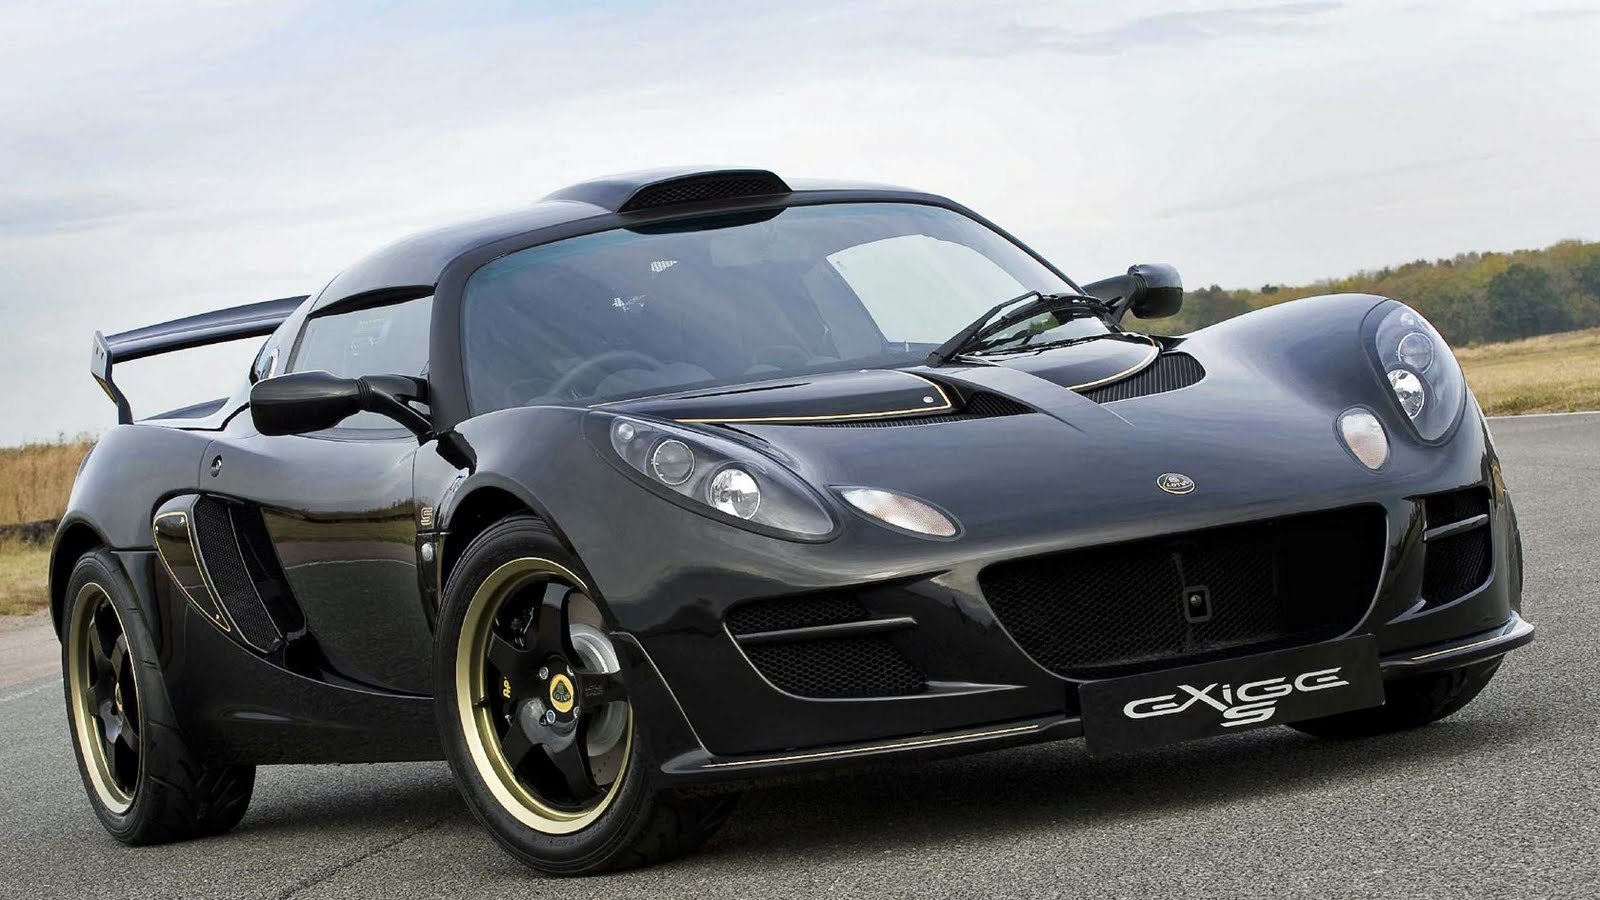 The Worlds Most Beautiful Cars - Beautiful fast cars